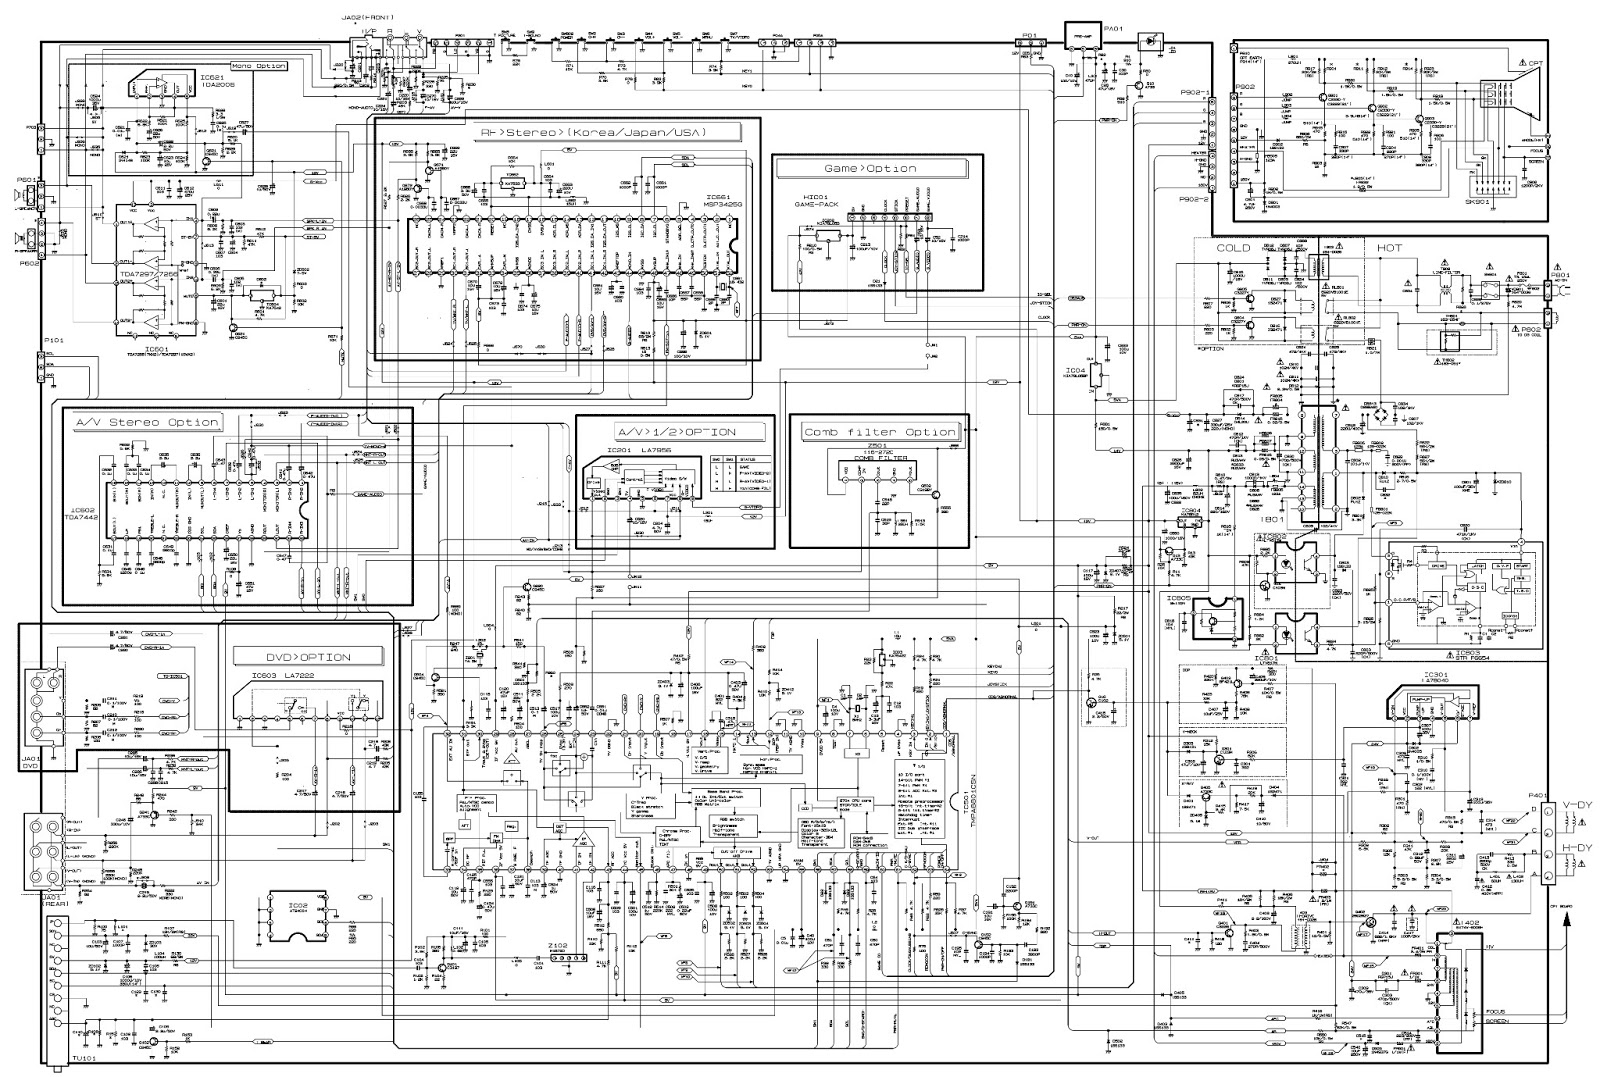 medium resolution of lg rp21fd10 schematic diagram used ics tda2006 tda7297 7296 rh electronicshelponline blogspot com lg tv diagram